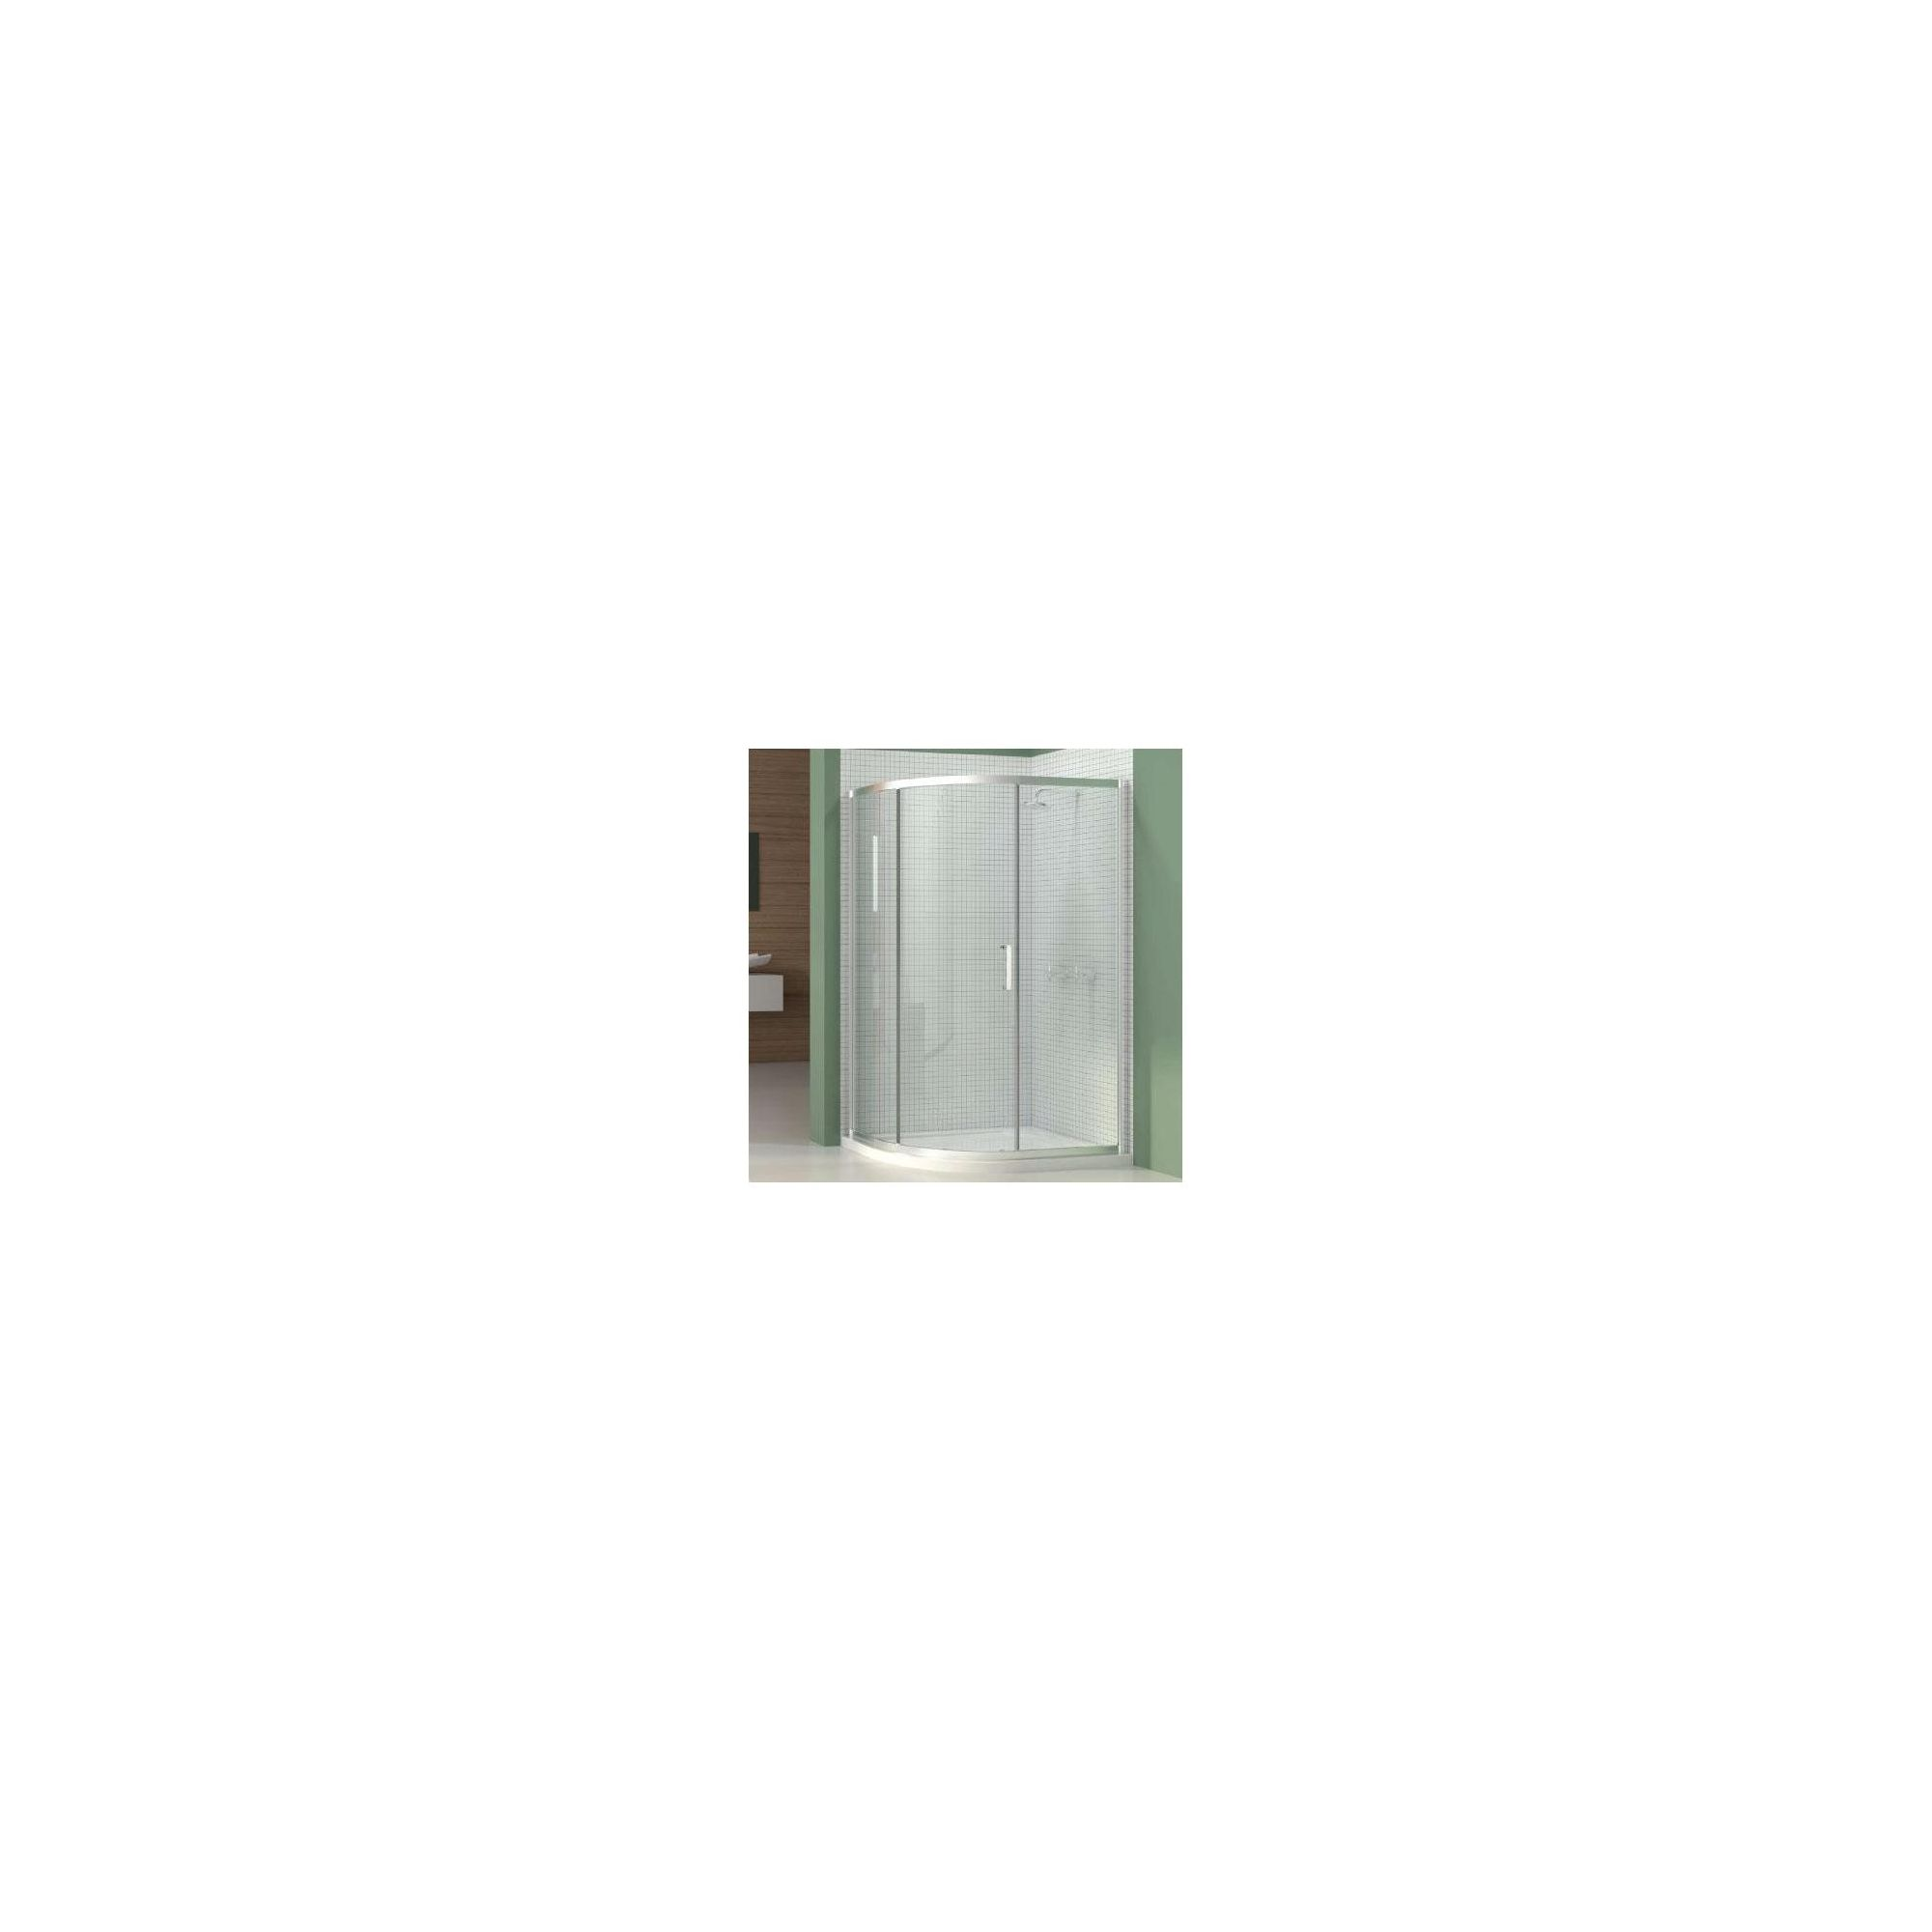 Merlyn Vivid Six Offset Quadrant Shower Enclosure, 1200mm x 800mm, Left Handed, Low Profile Tray, 6mm Glass at Tesco Direct